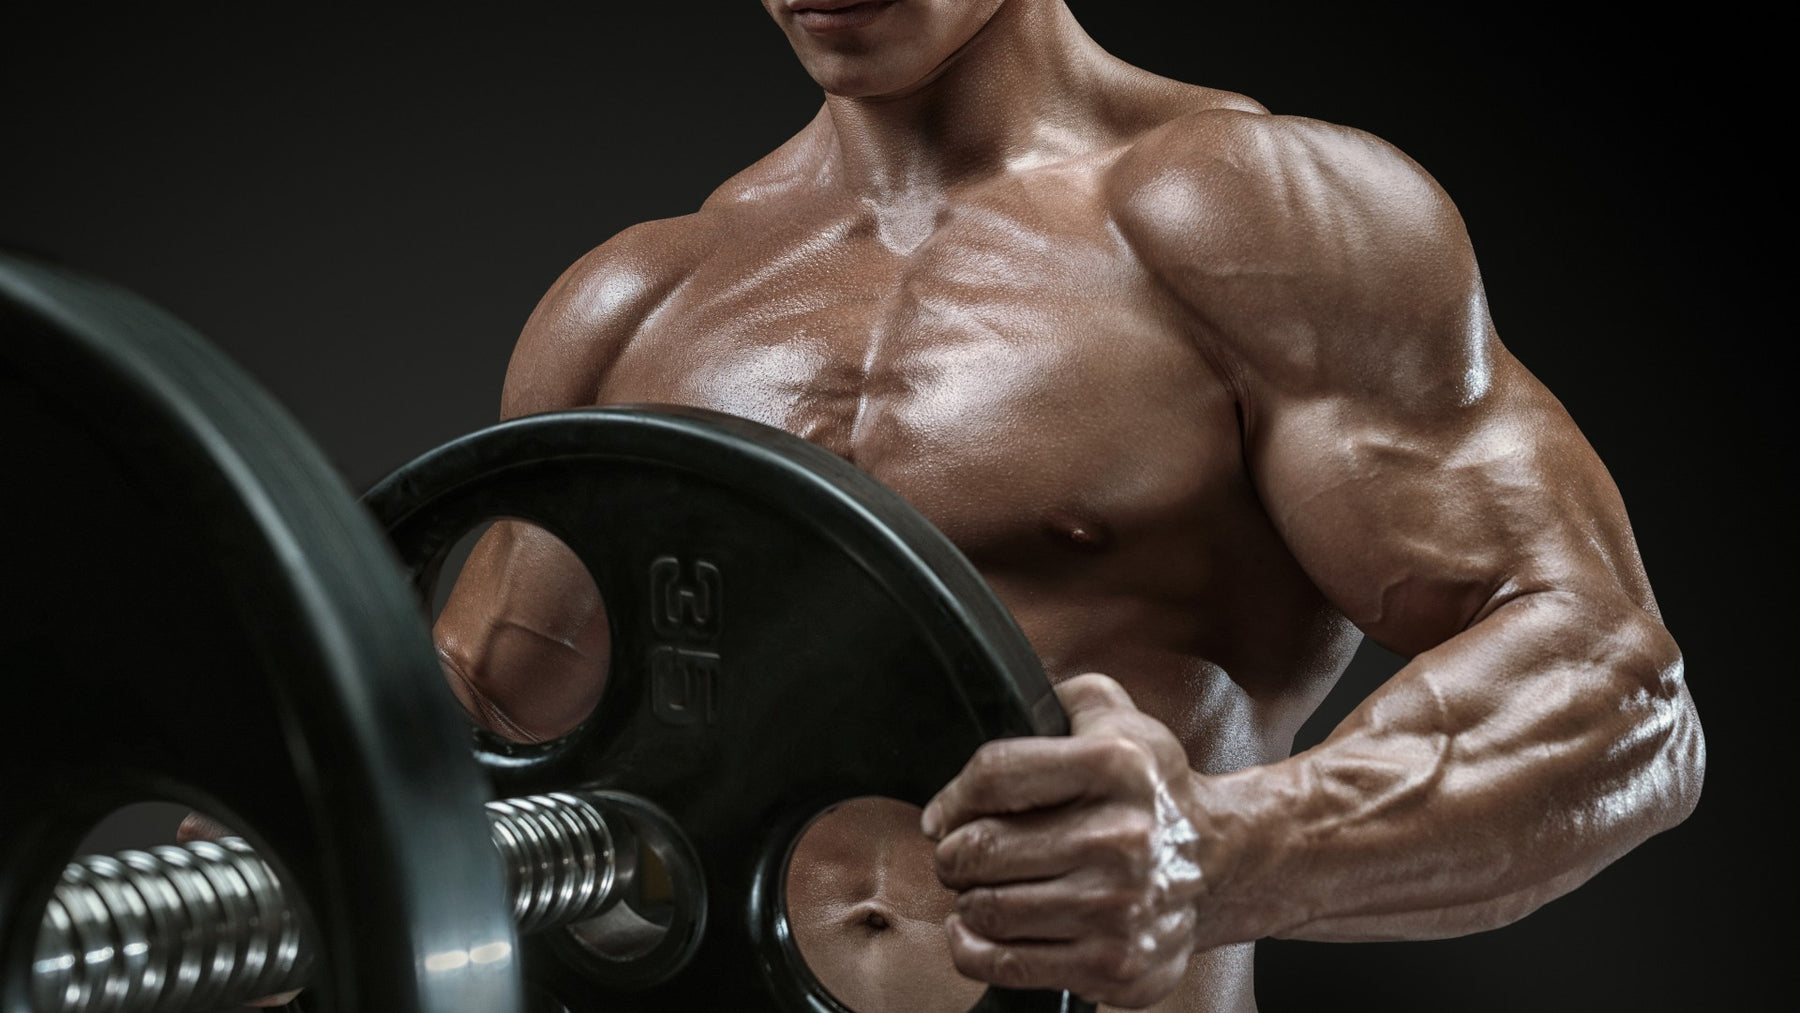 How to Build Your Own Muscle Building Workout